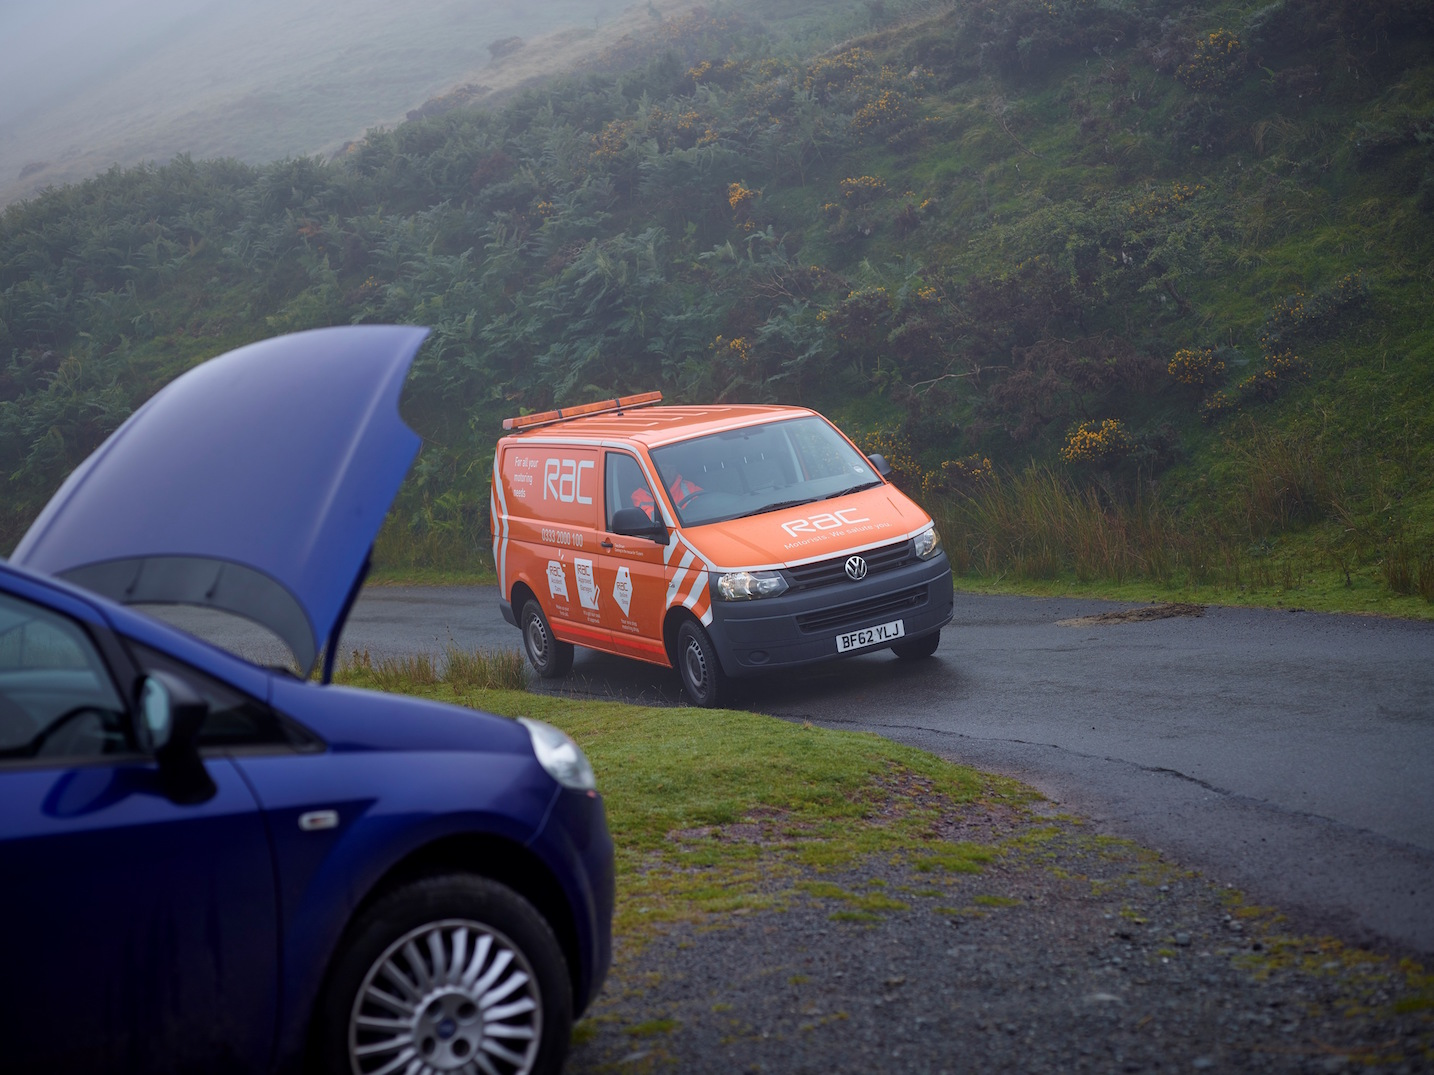 The unmistakable sight of an RAC patrol van can cheer any motorist with an ailing car (especially in remote areas!); the service is available 24 hours a day, all year round.